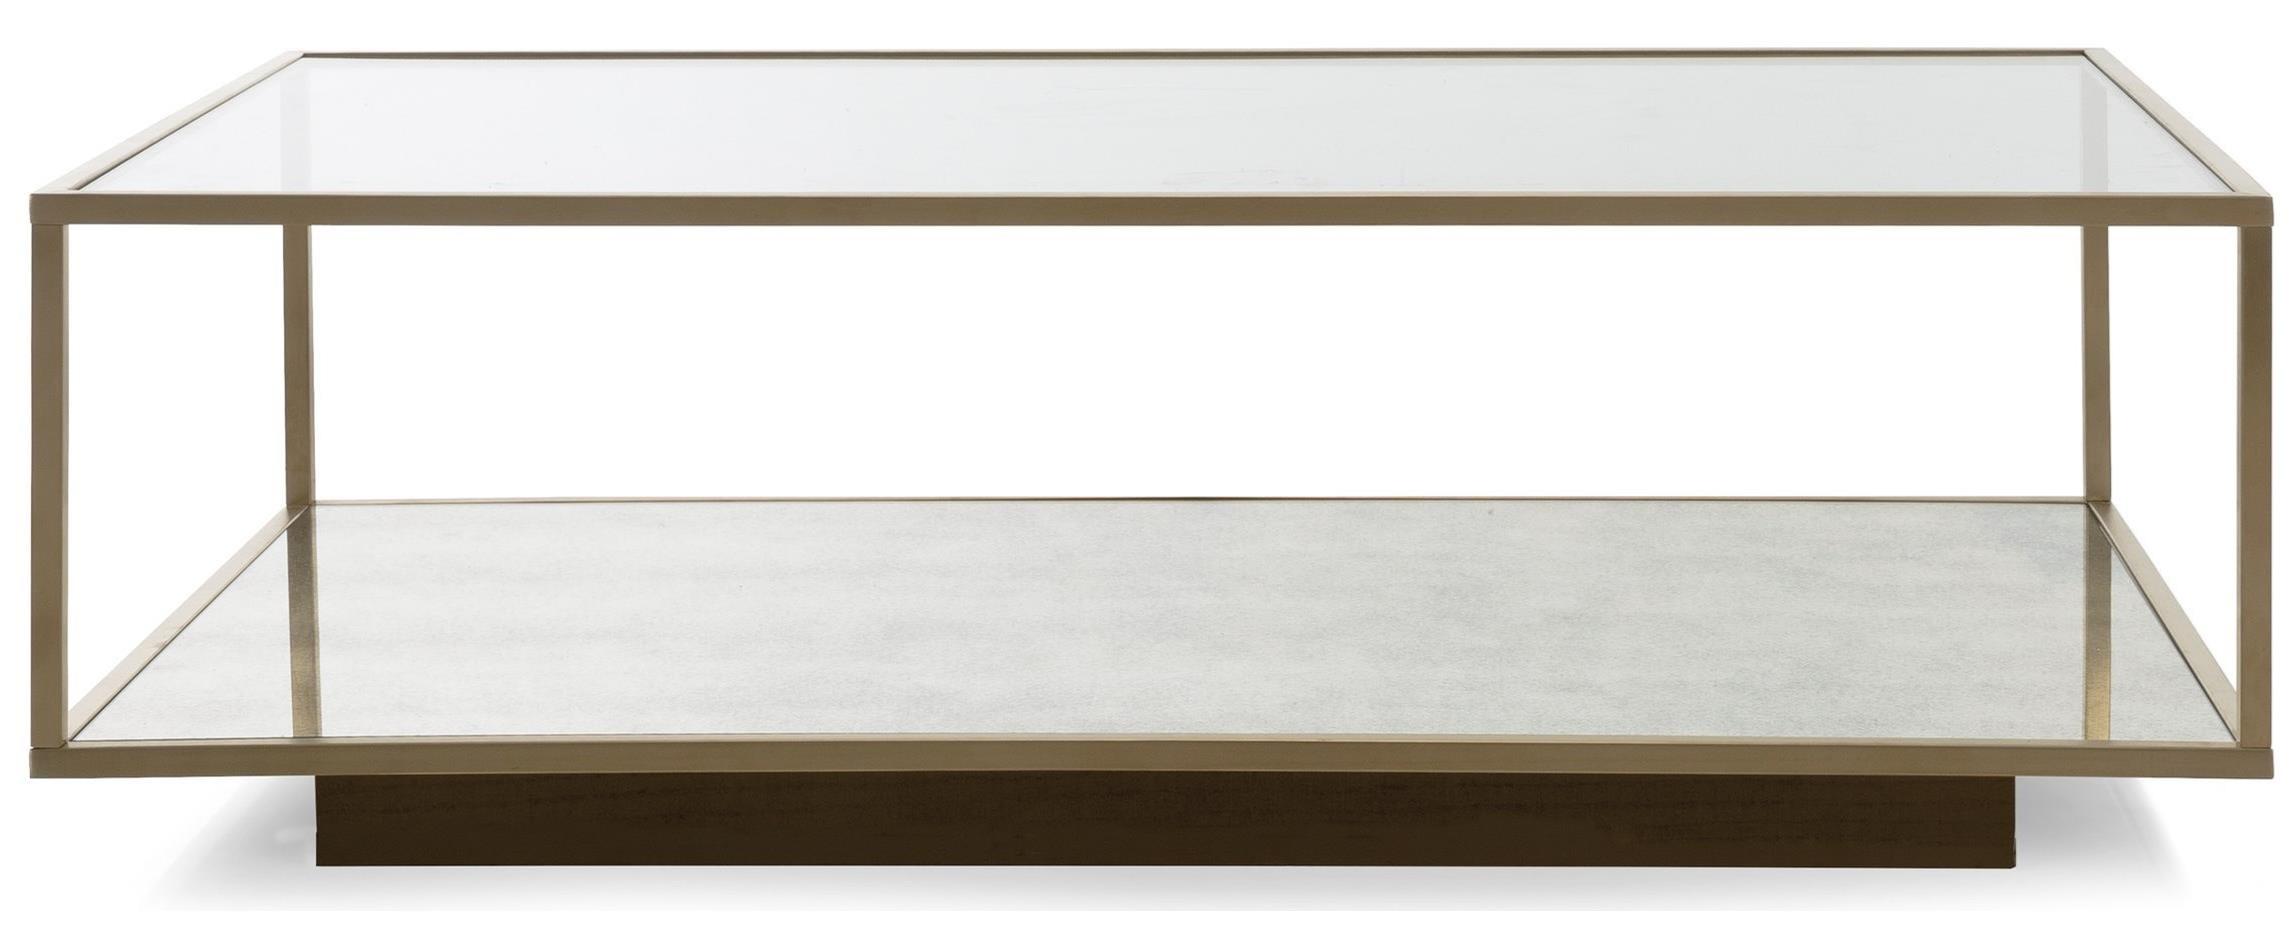 Decor Rest Milan Rectangular Coffee Table With Glass Top